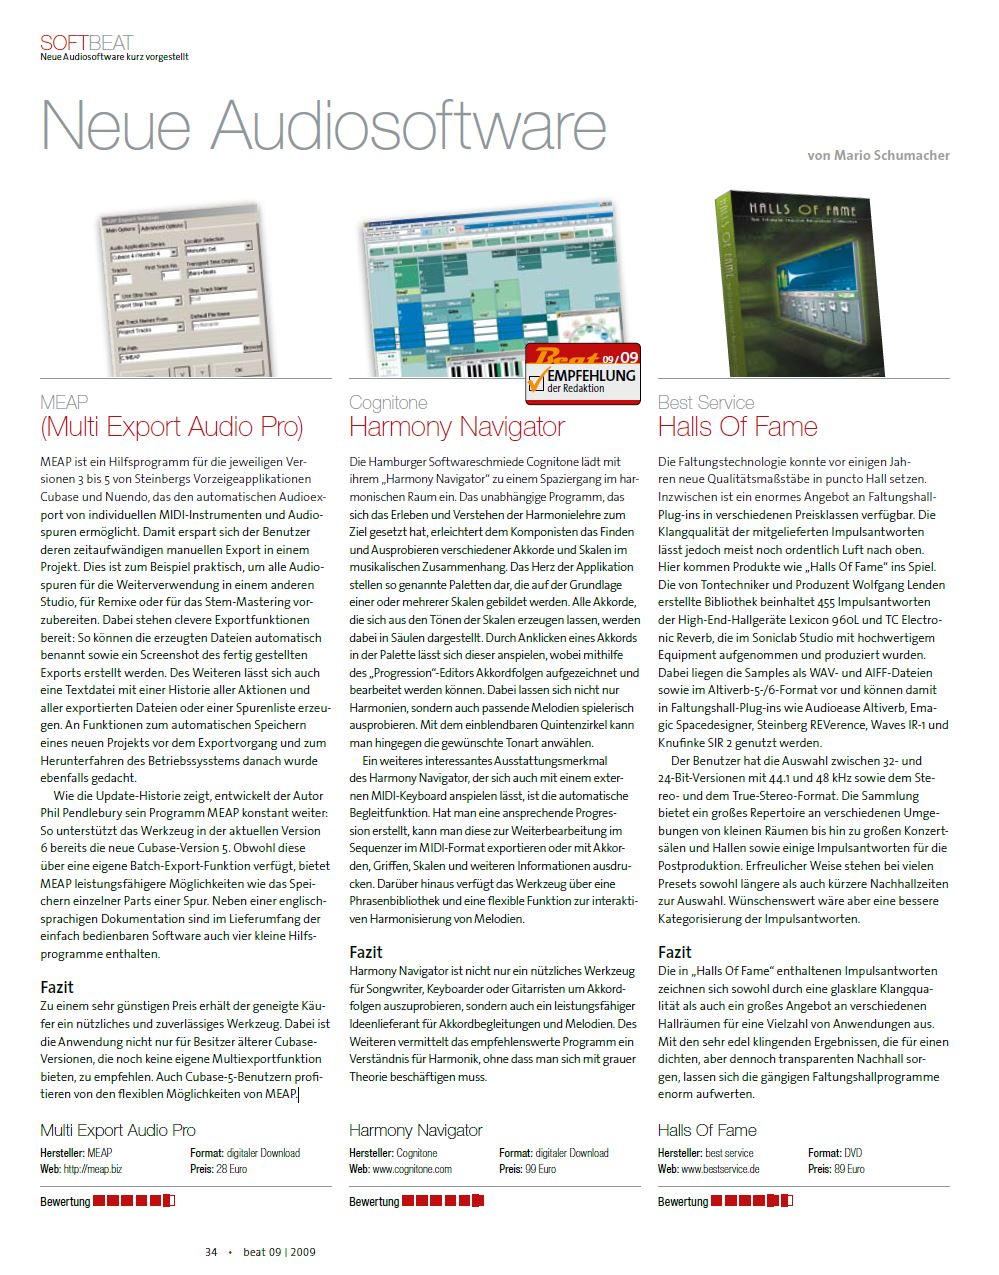 MEAP Reviewed in SOFTBEAT Magazine